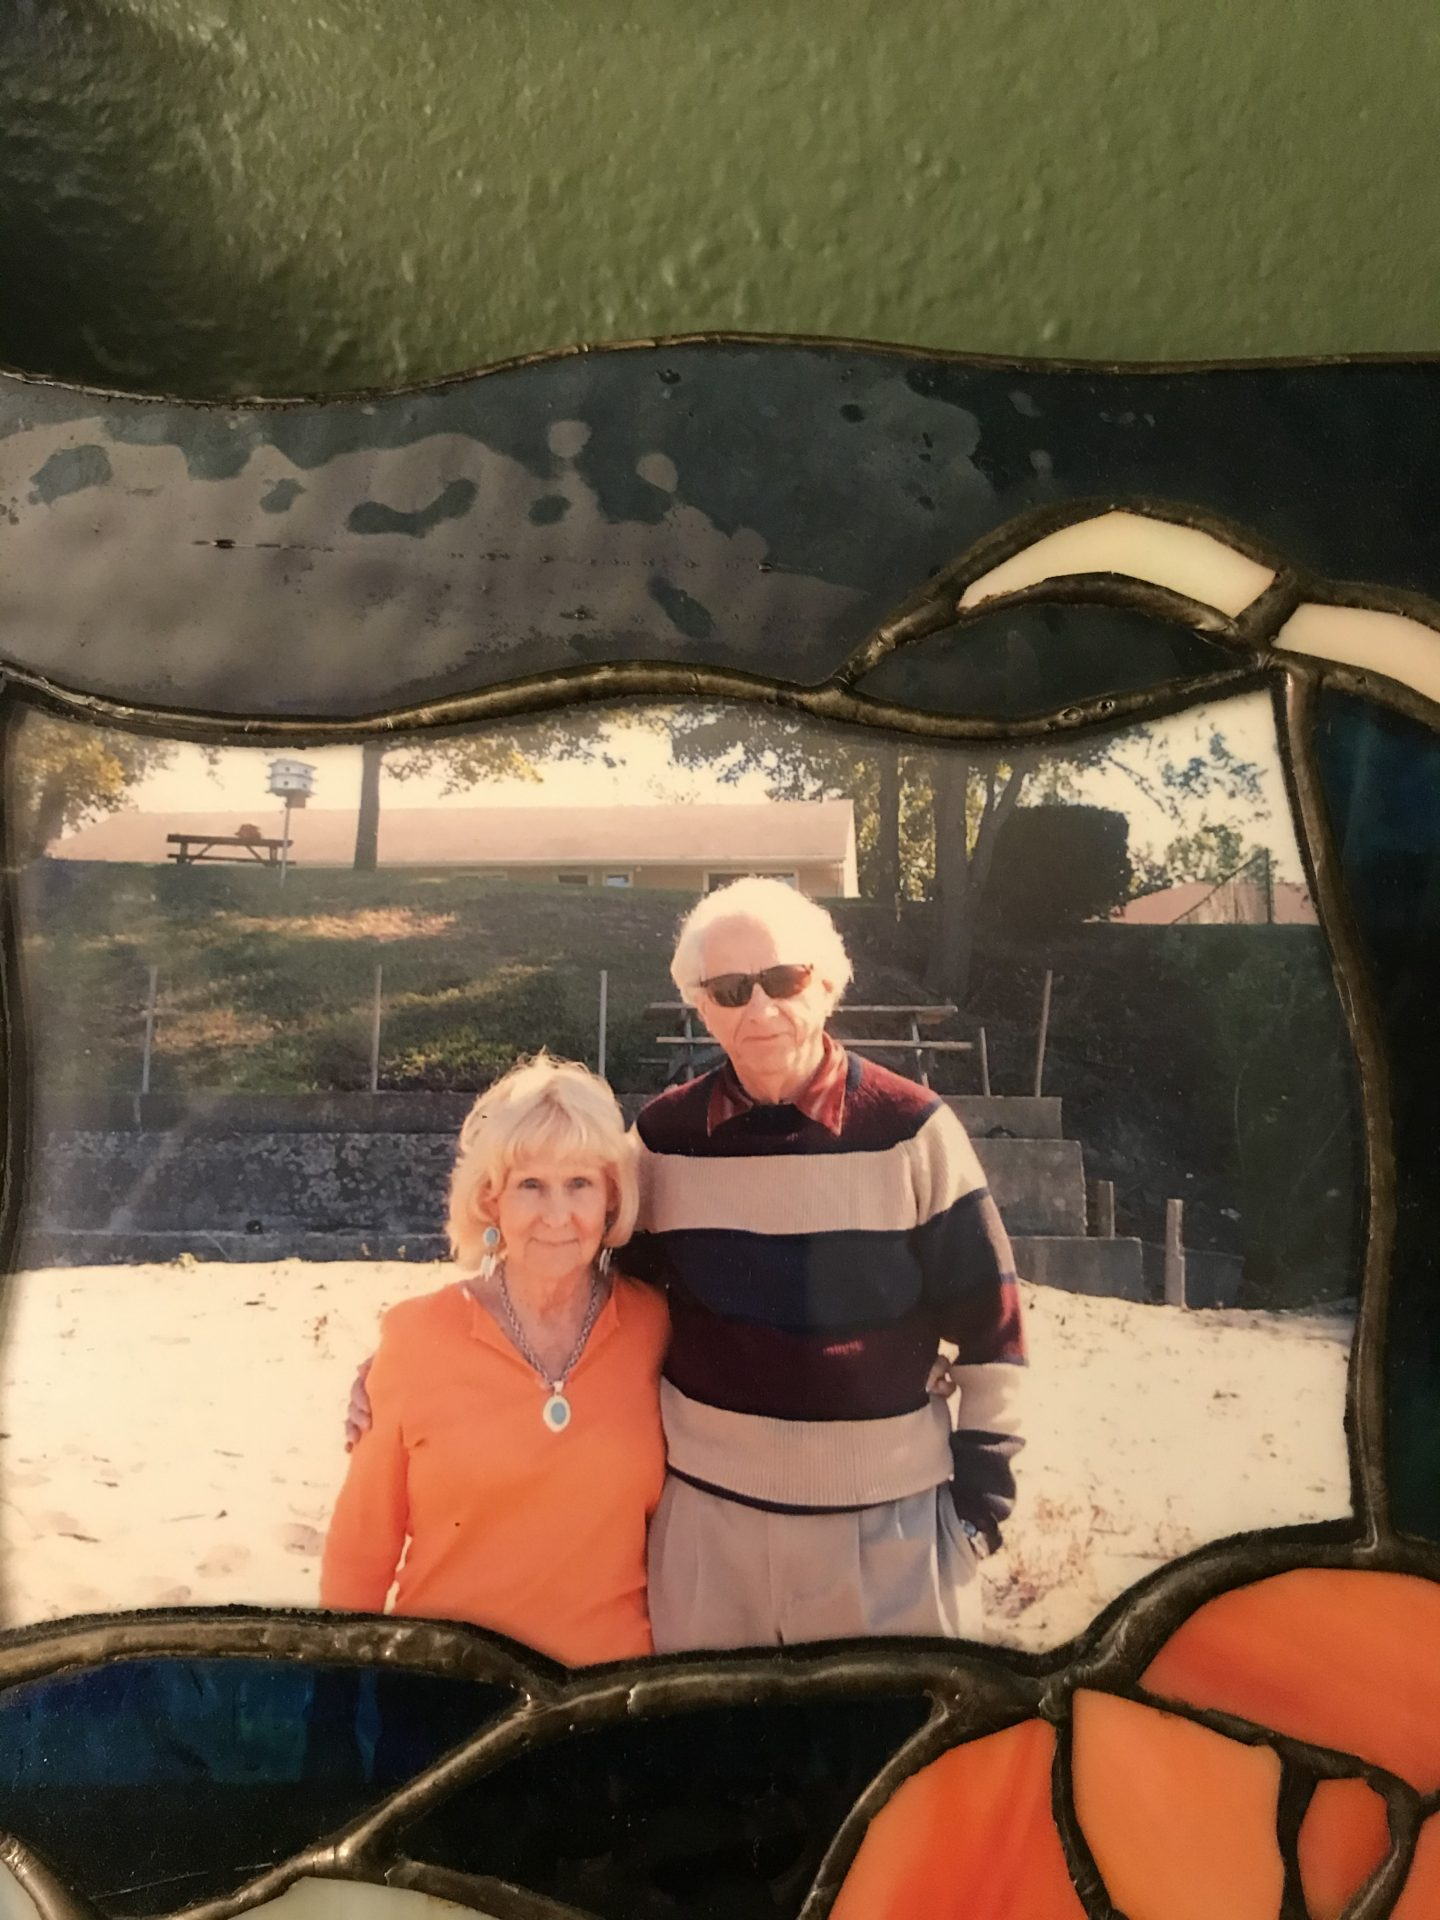 Mom and Ray resided Port CharlotteFL